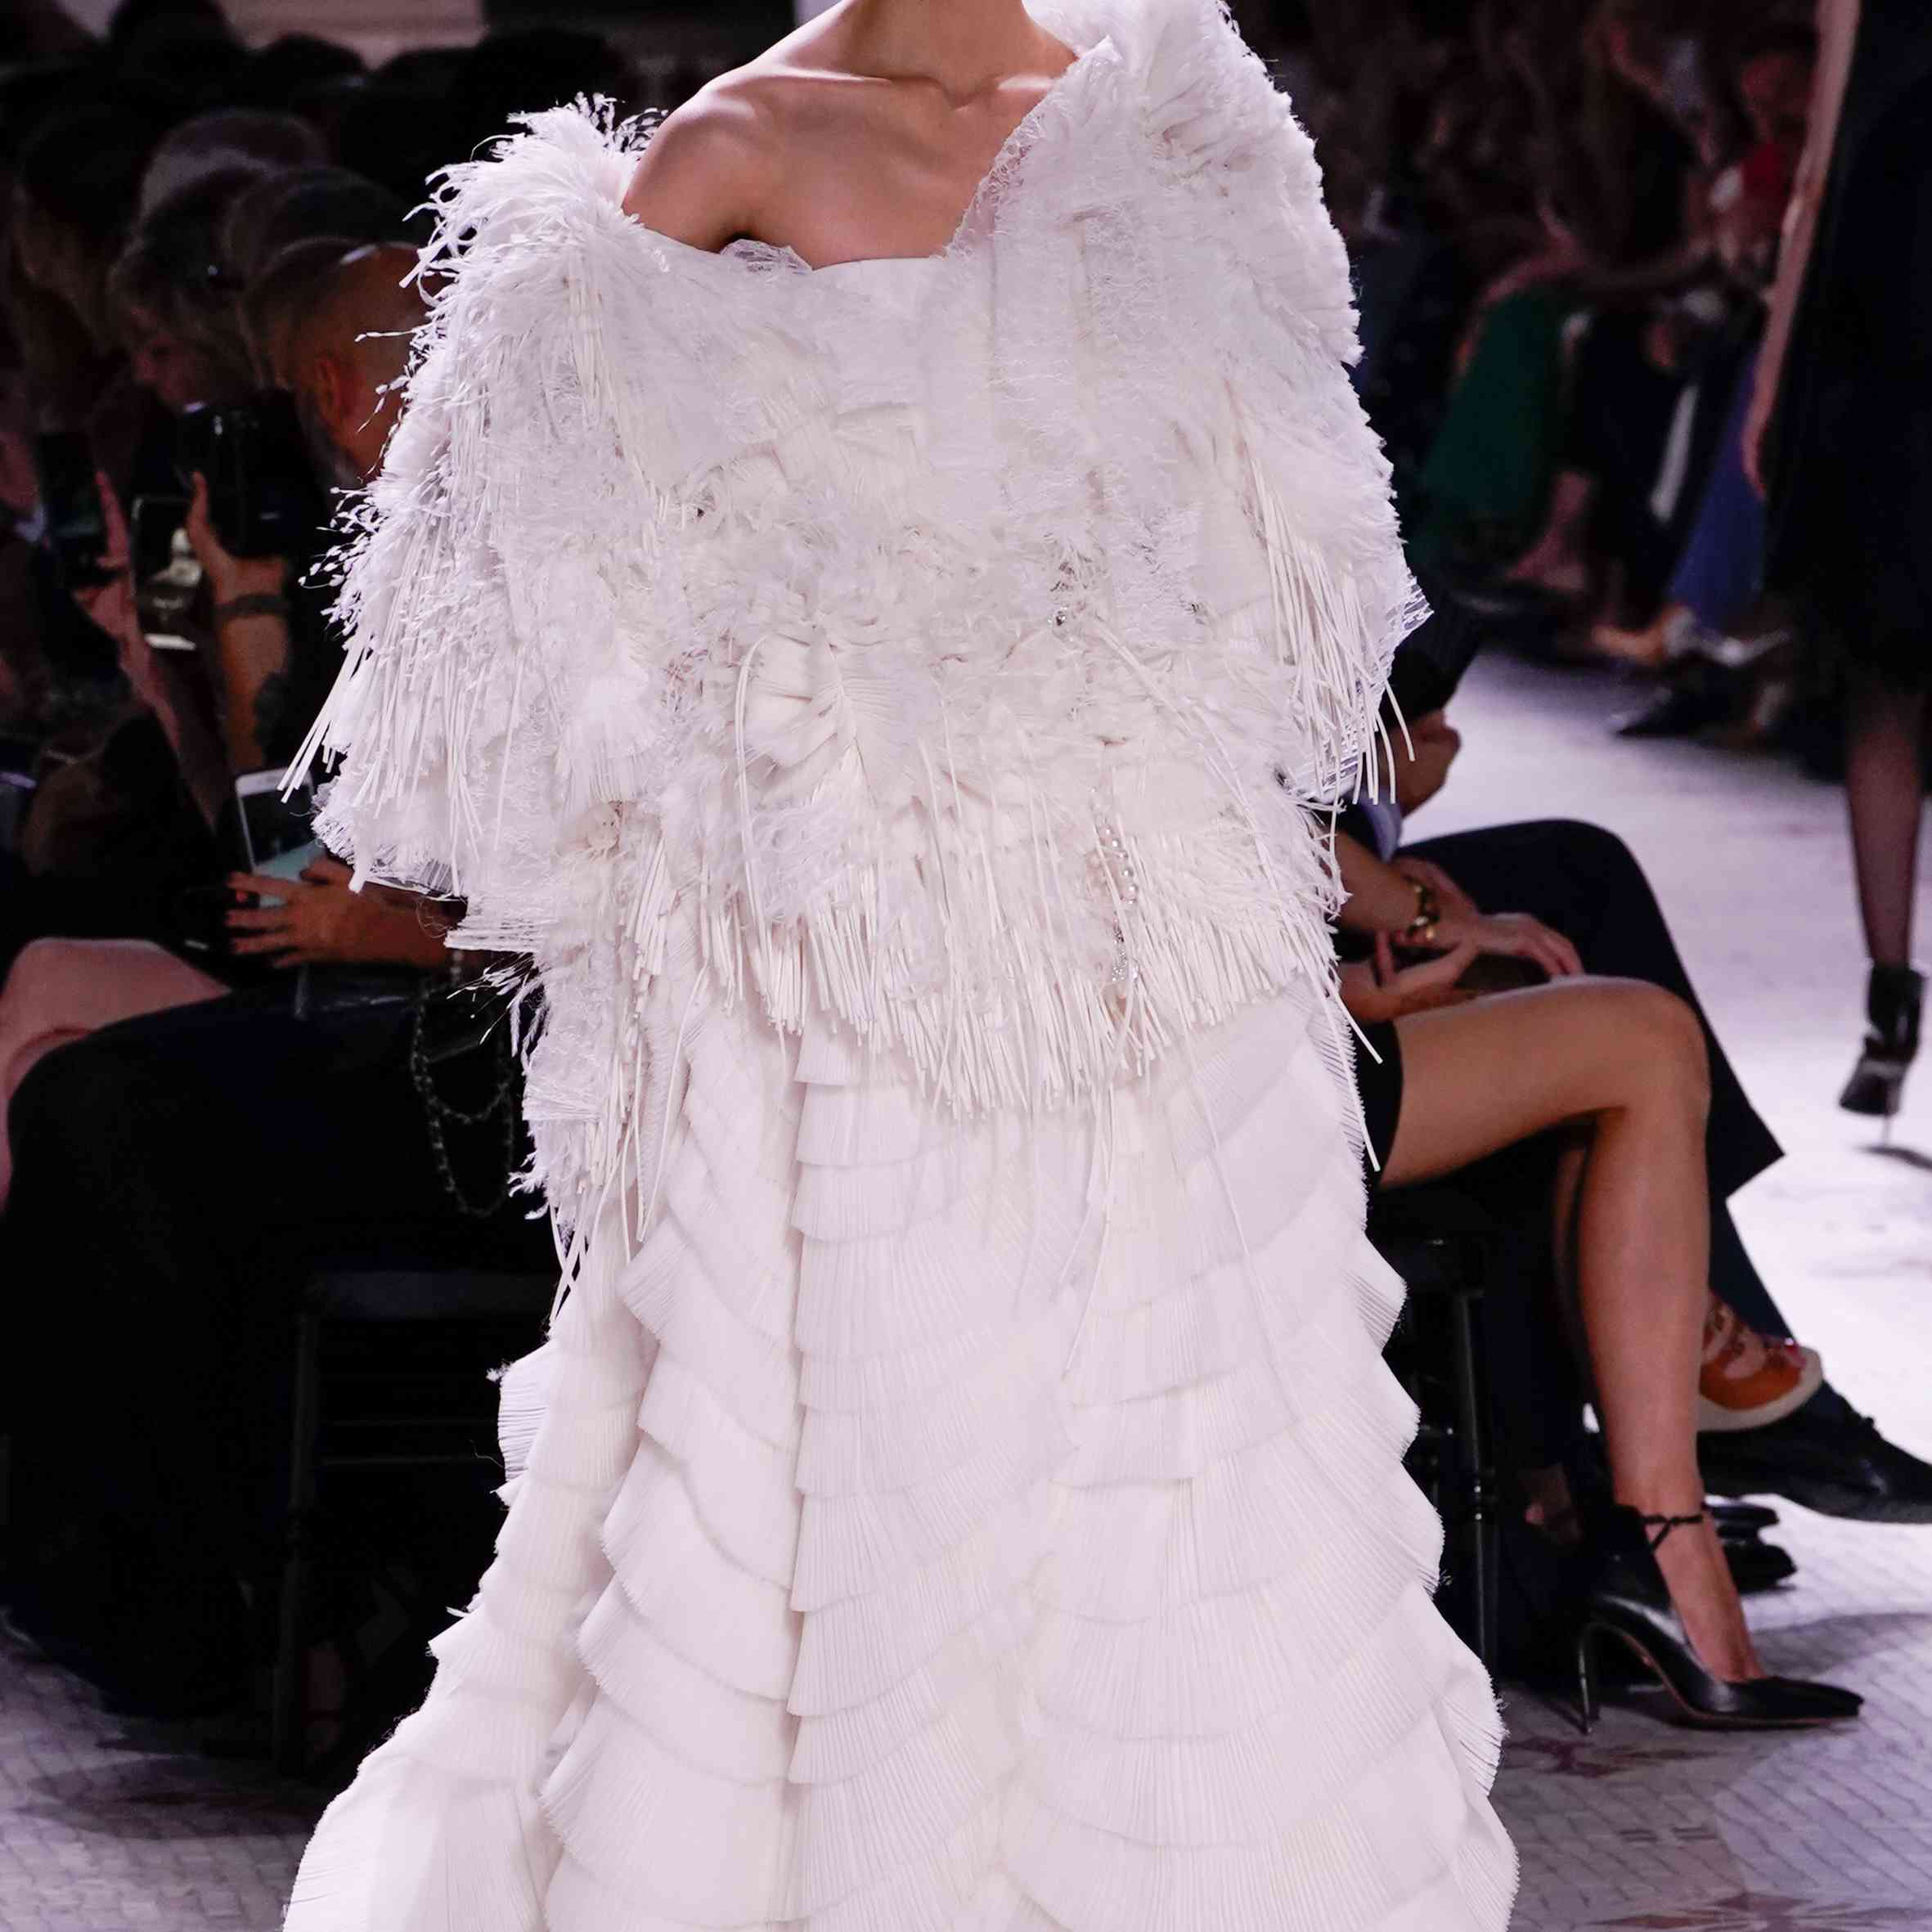 A model walks the runway in feathered, tiered white gown